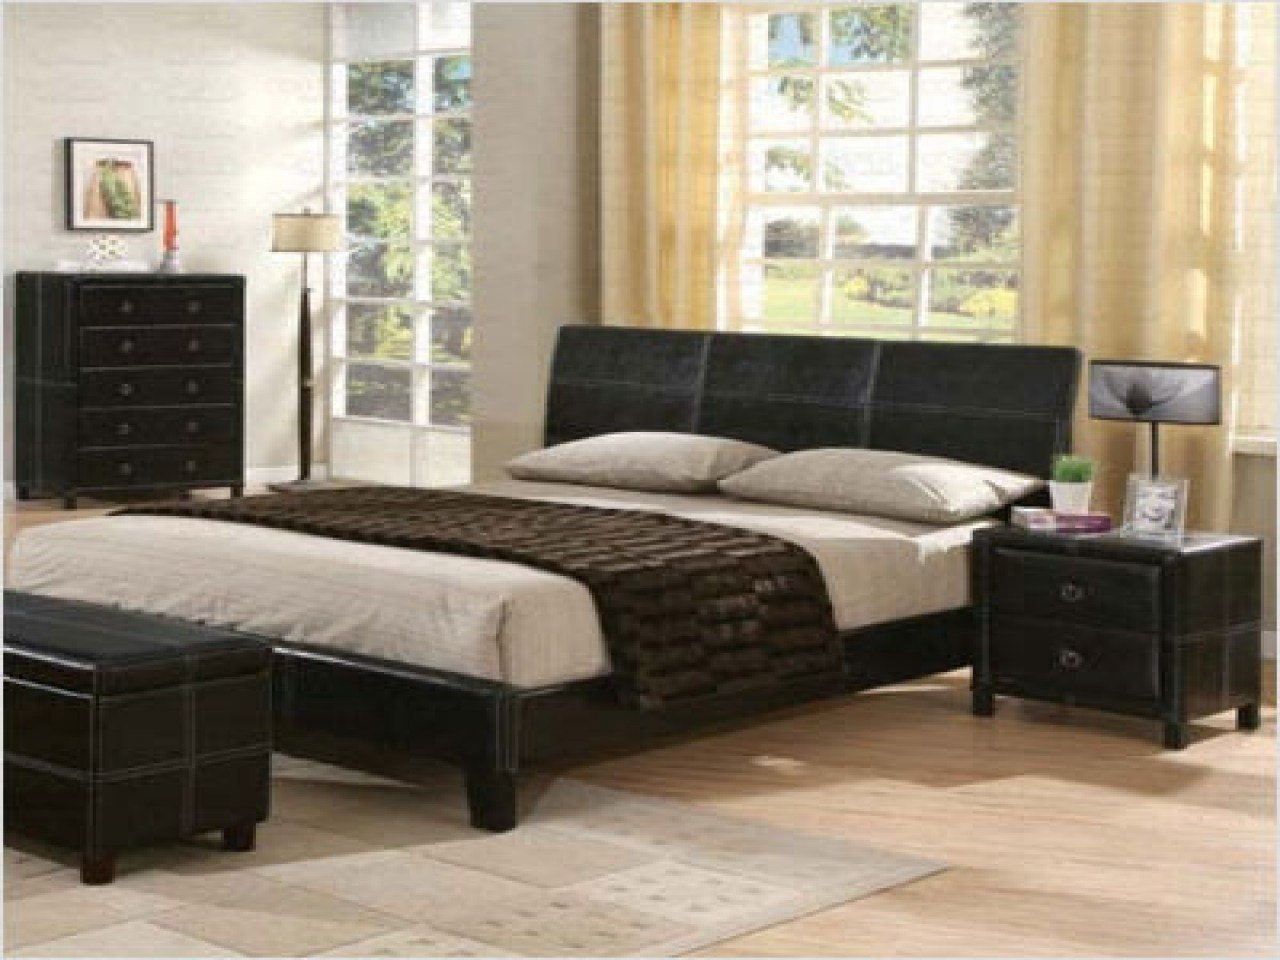 Best Modern Wood Vanity Black Leather Bedroom Furniture Faux With Pictures